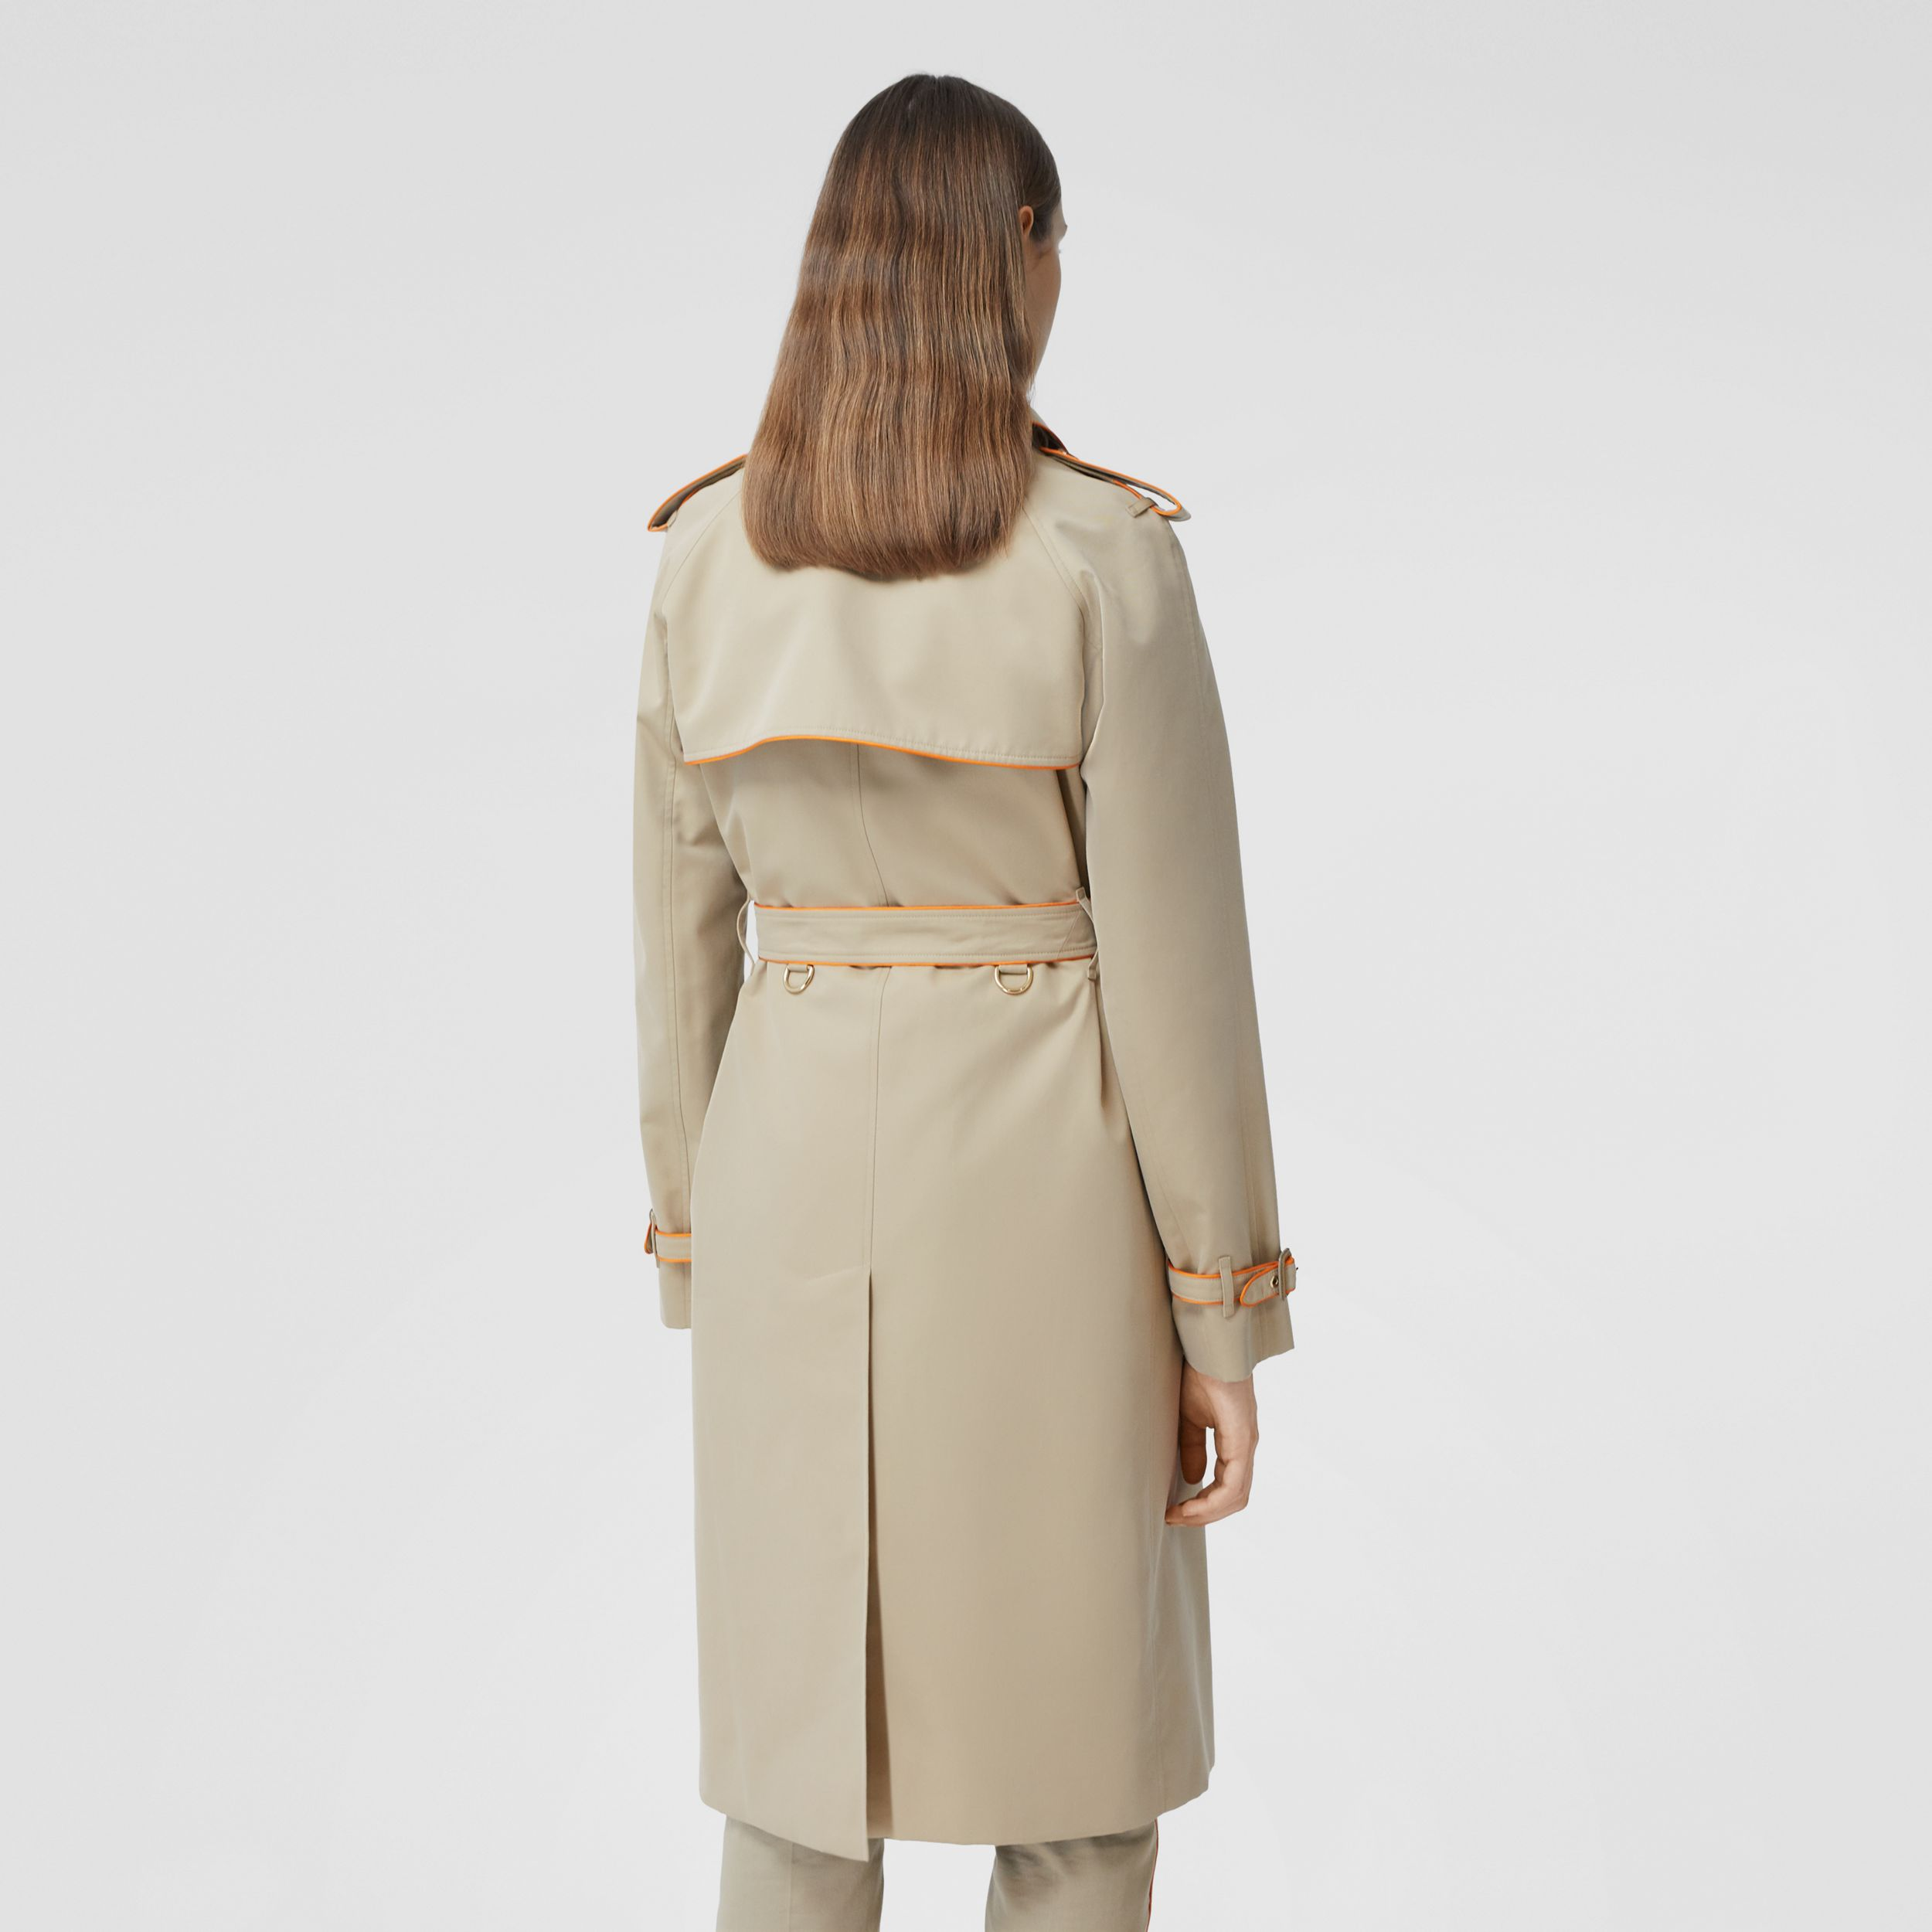 Piped Cotton Gabardine Trench Coat in Honey - Women | Burberry Canada - 3